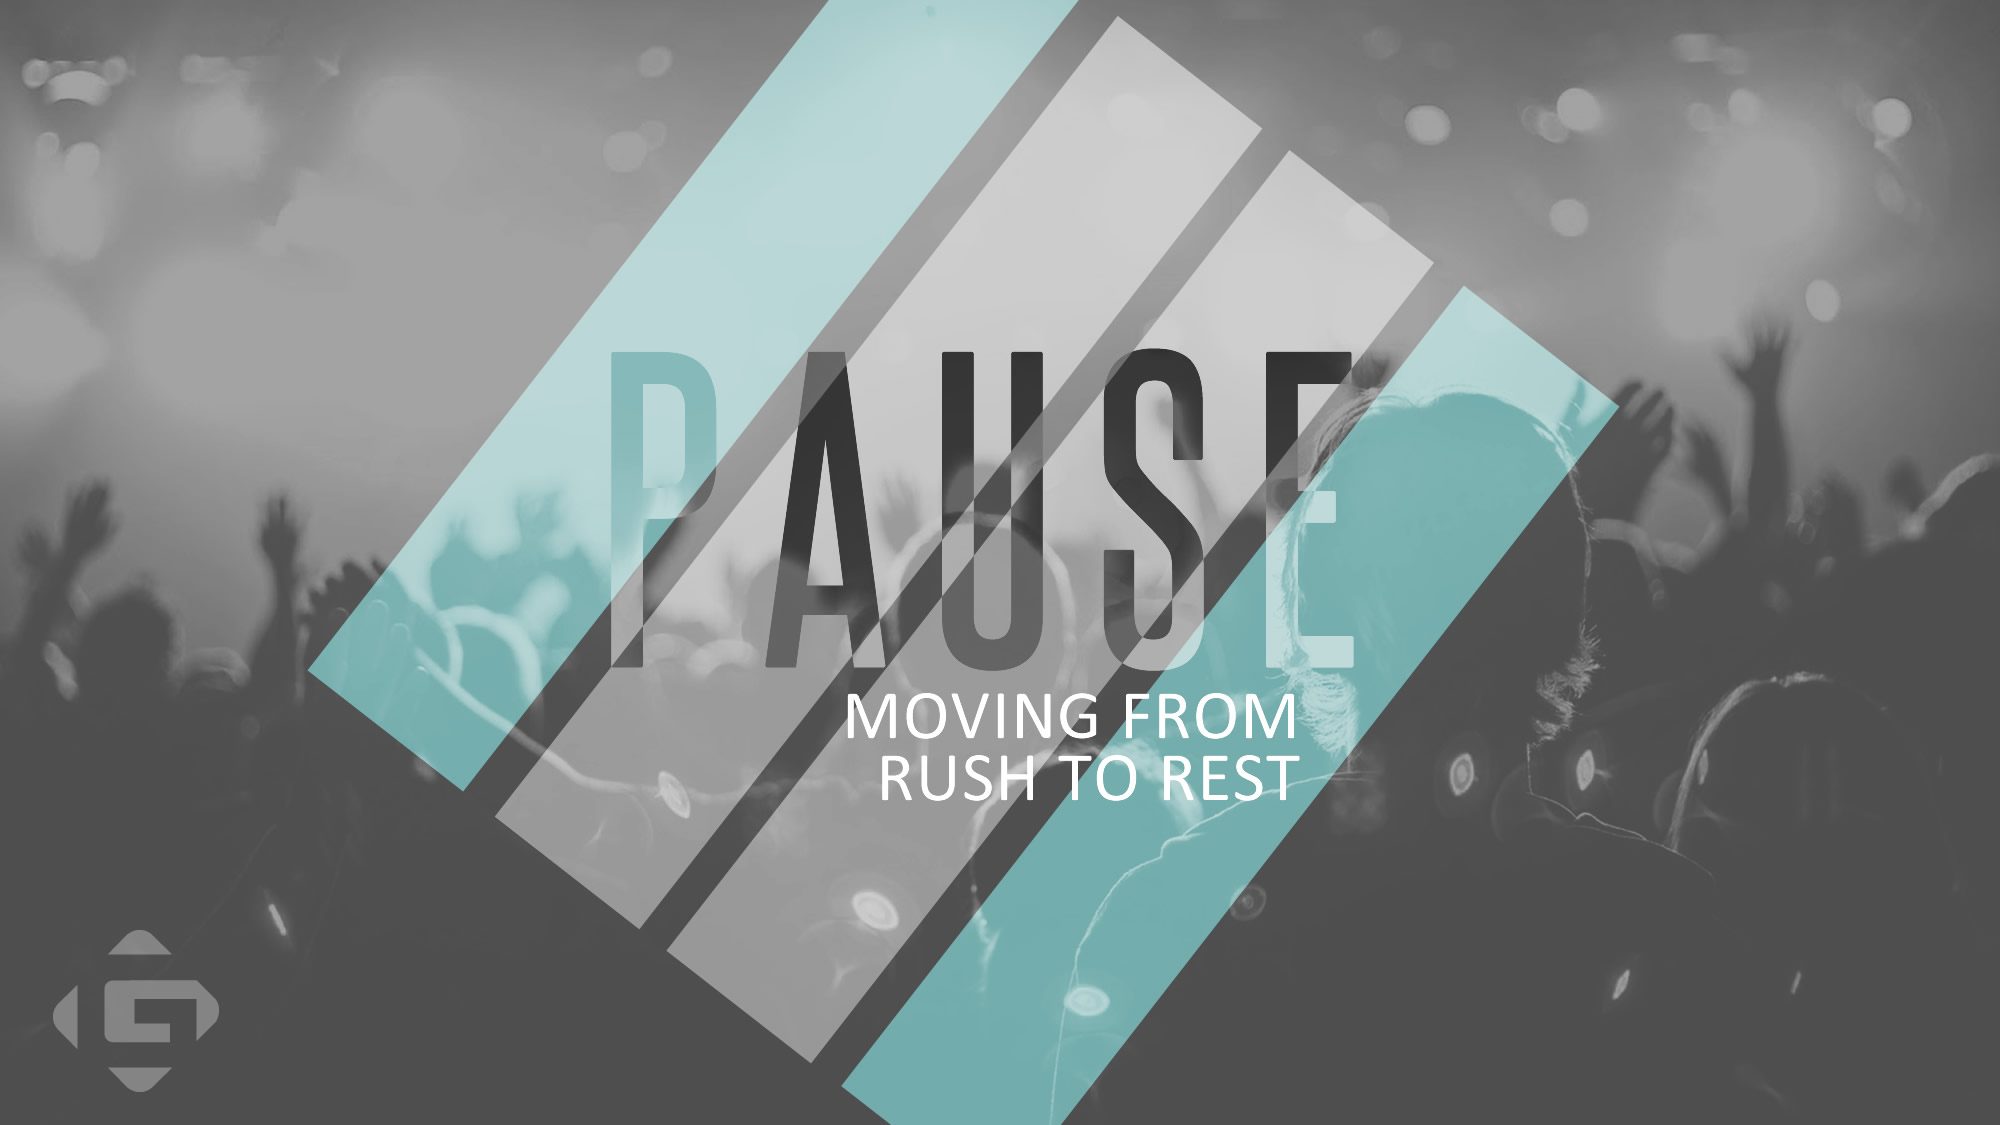 Pause Church Sermon Series Ideas